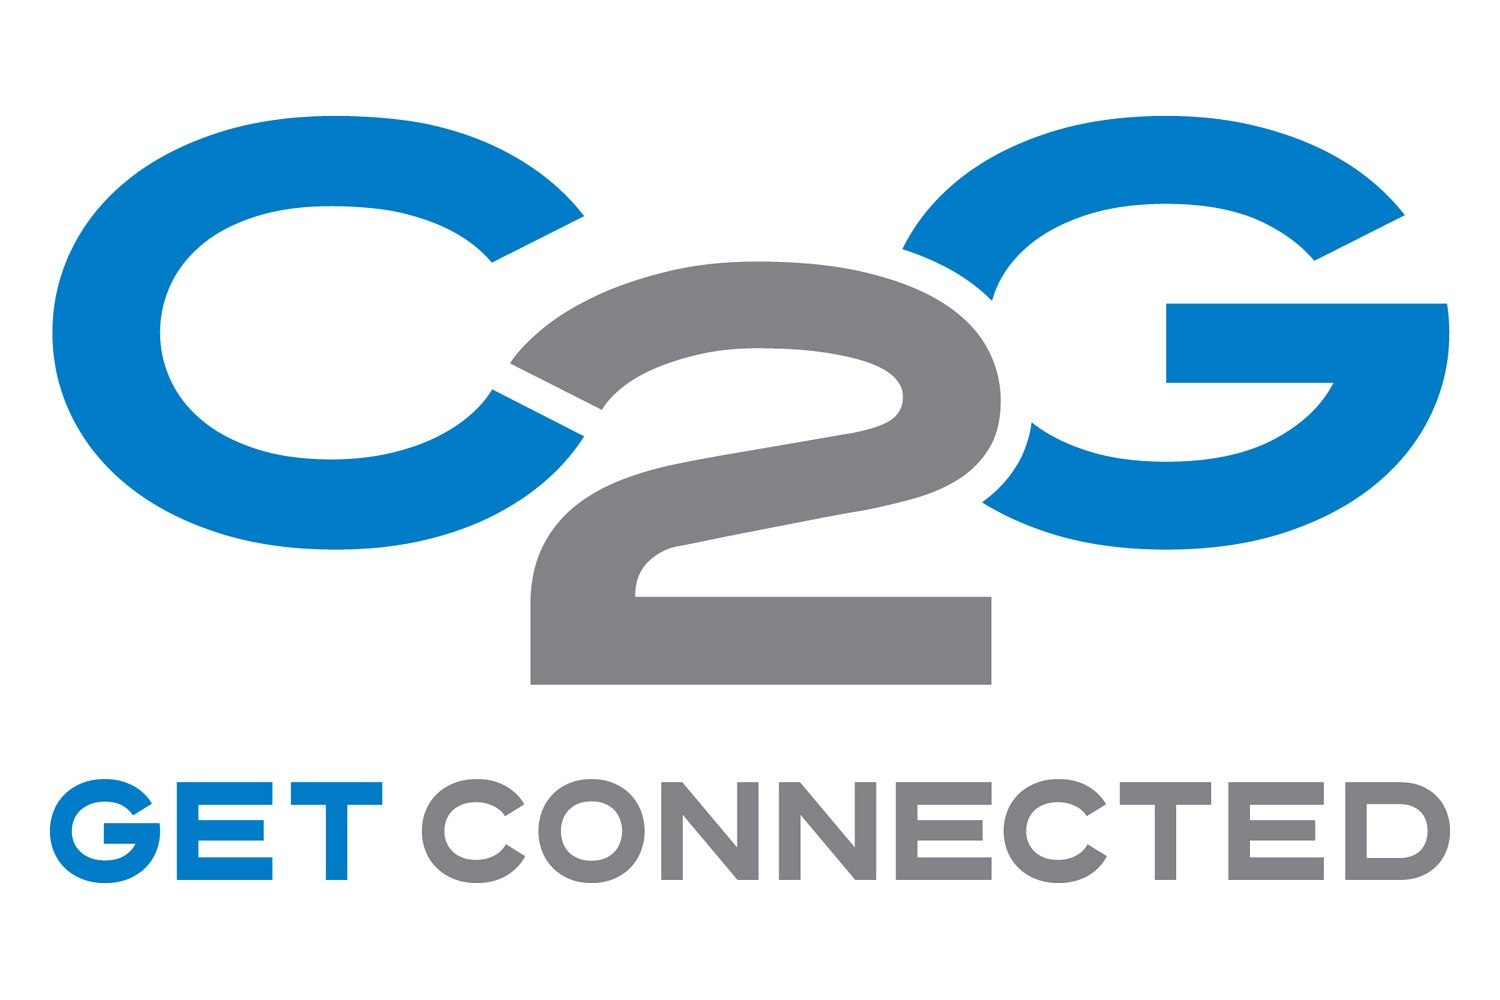 C2G Get Connected